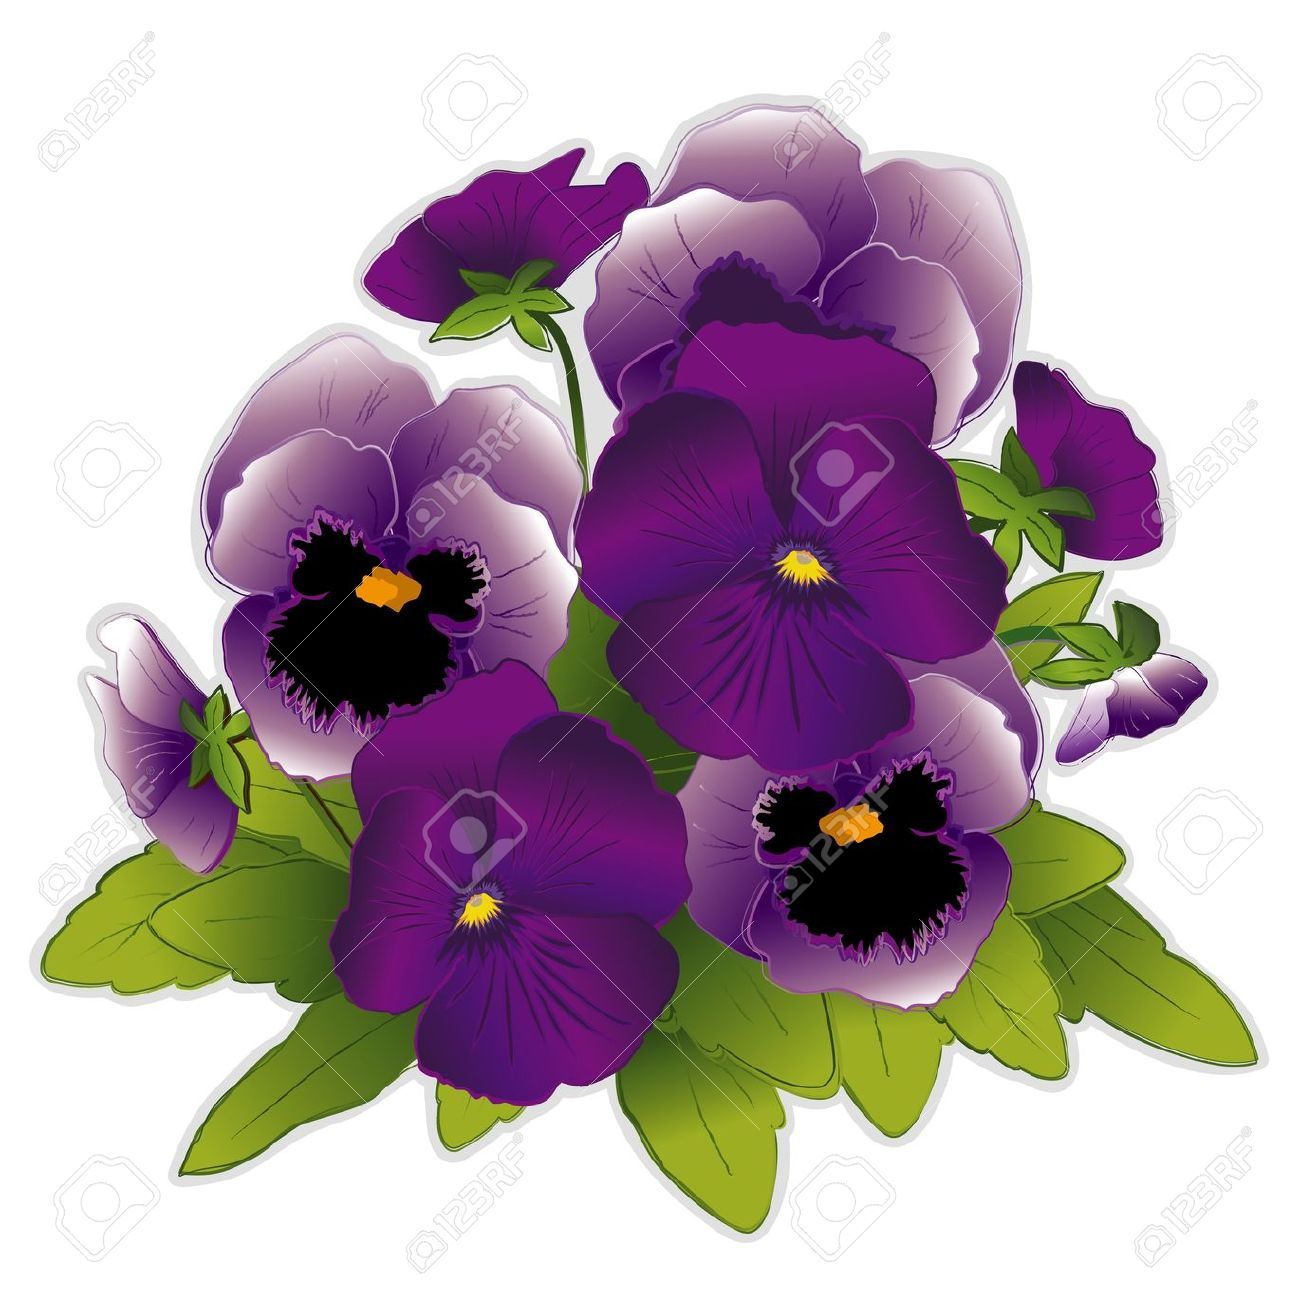 Pansy clipart #6, Download drawings